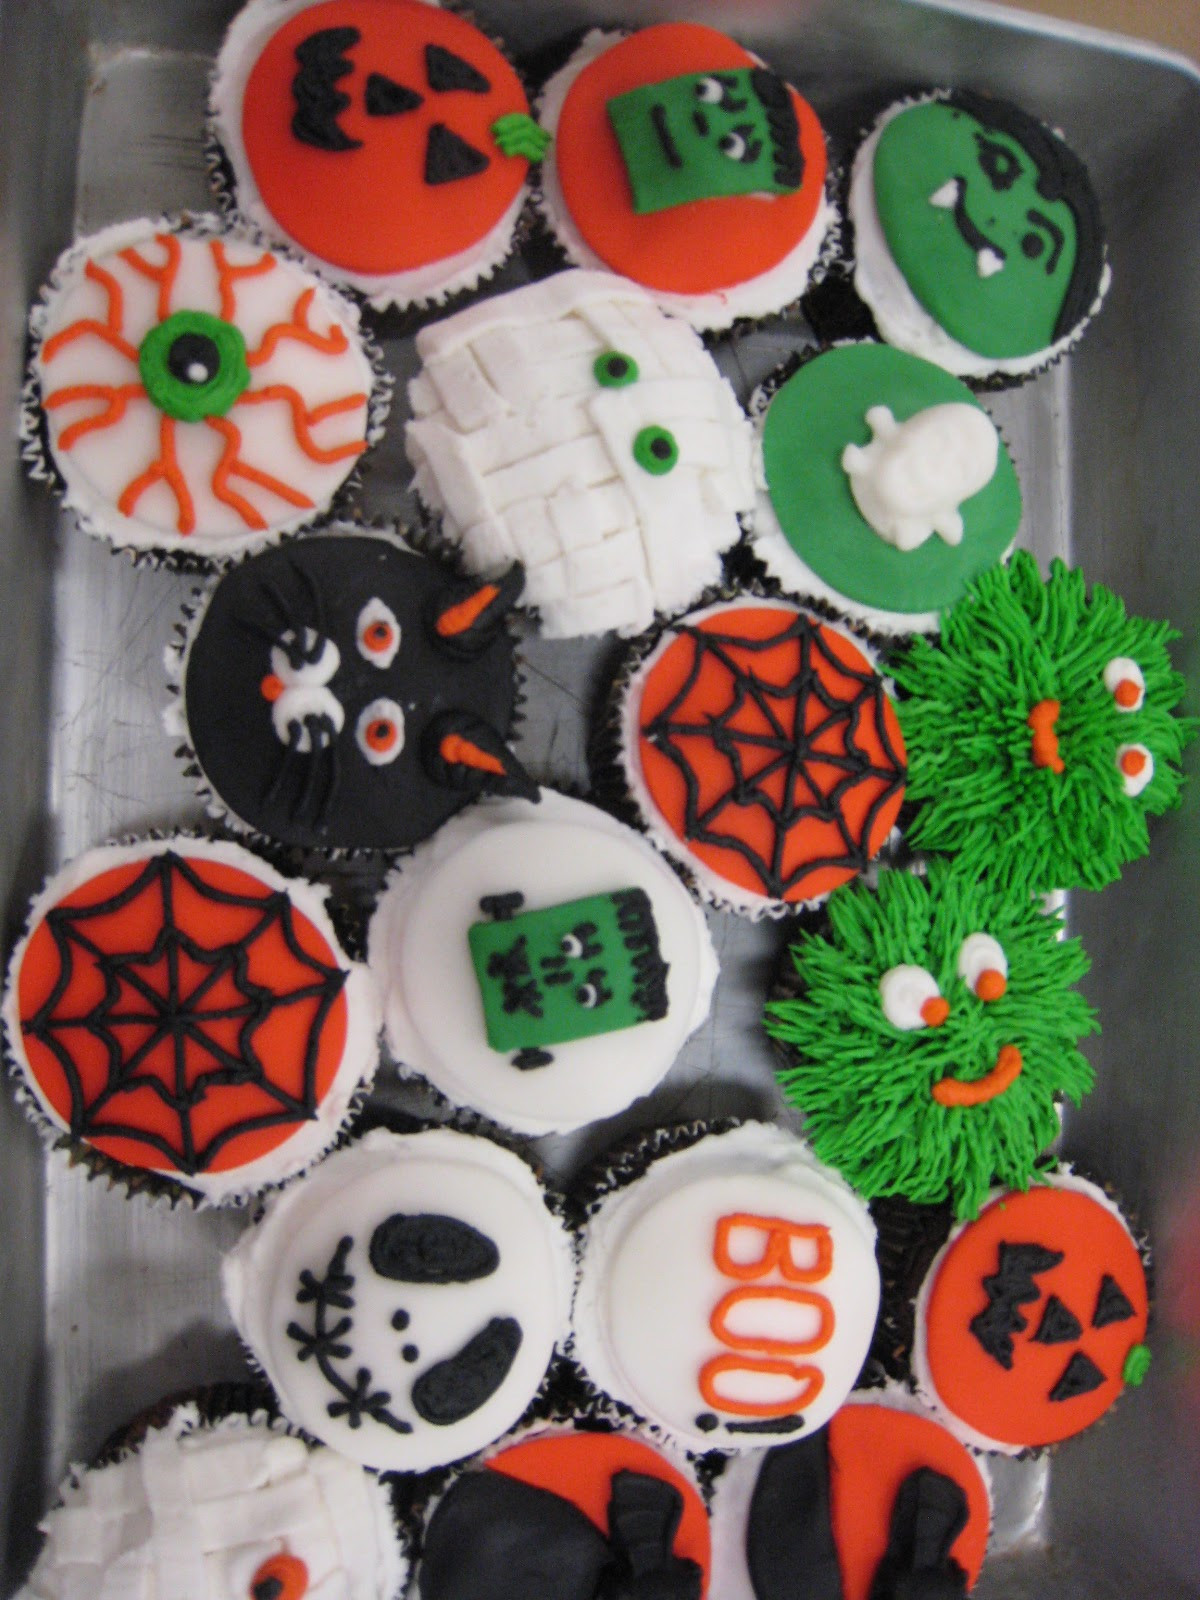 Halloween Cupcakes Decorations  Judy Cakes Sugar Arts Halloween Cupcake Decorating Class